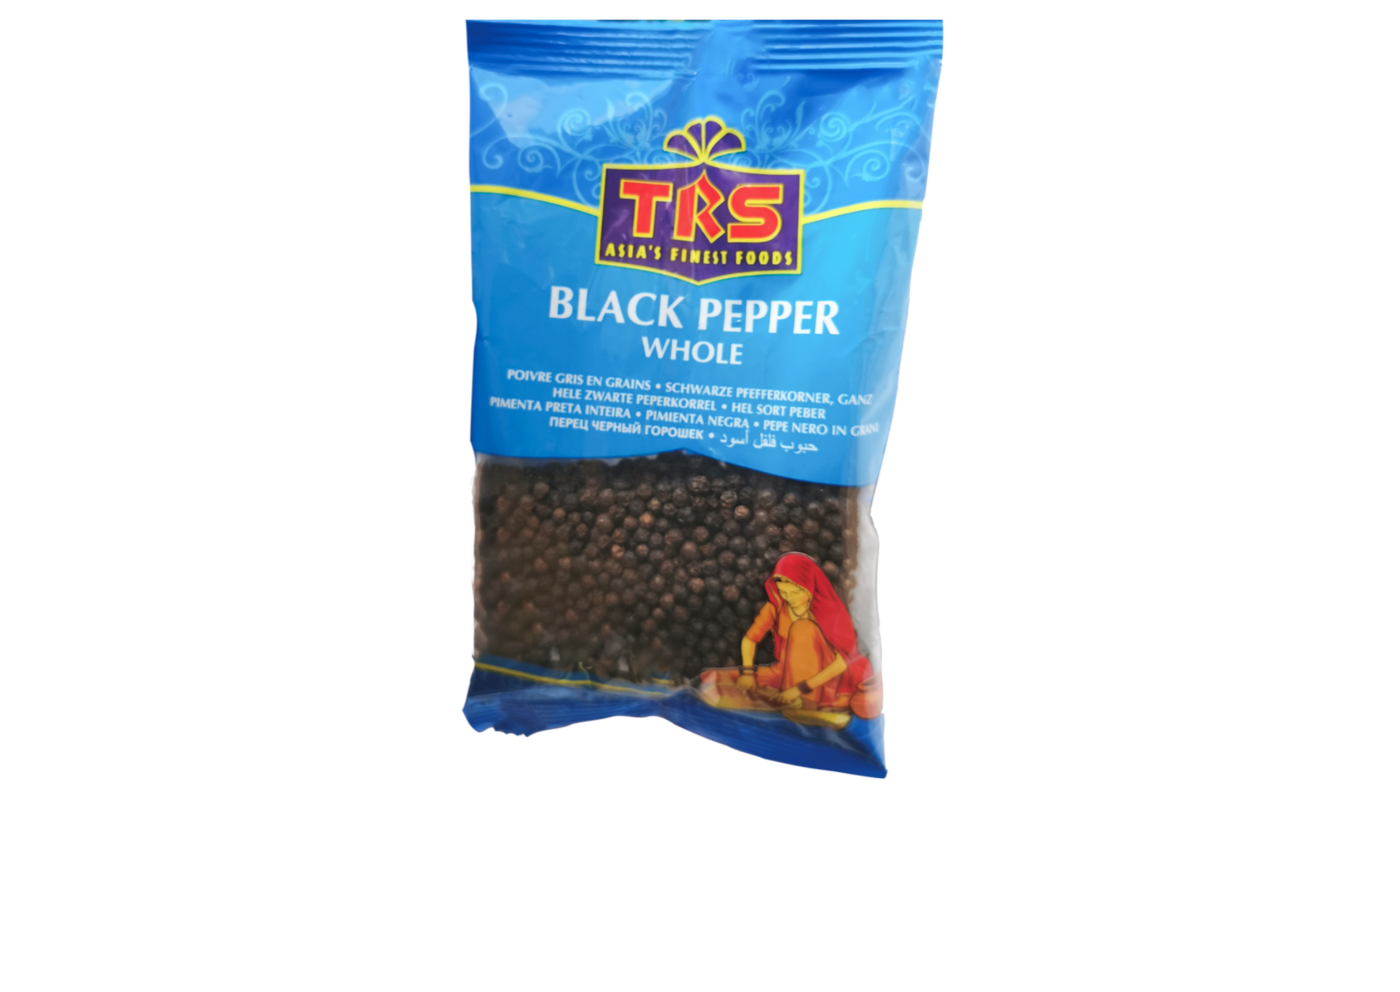 TRS Black Pepper Whole